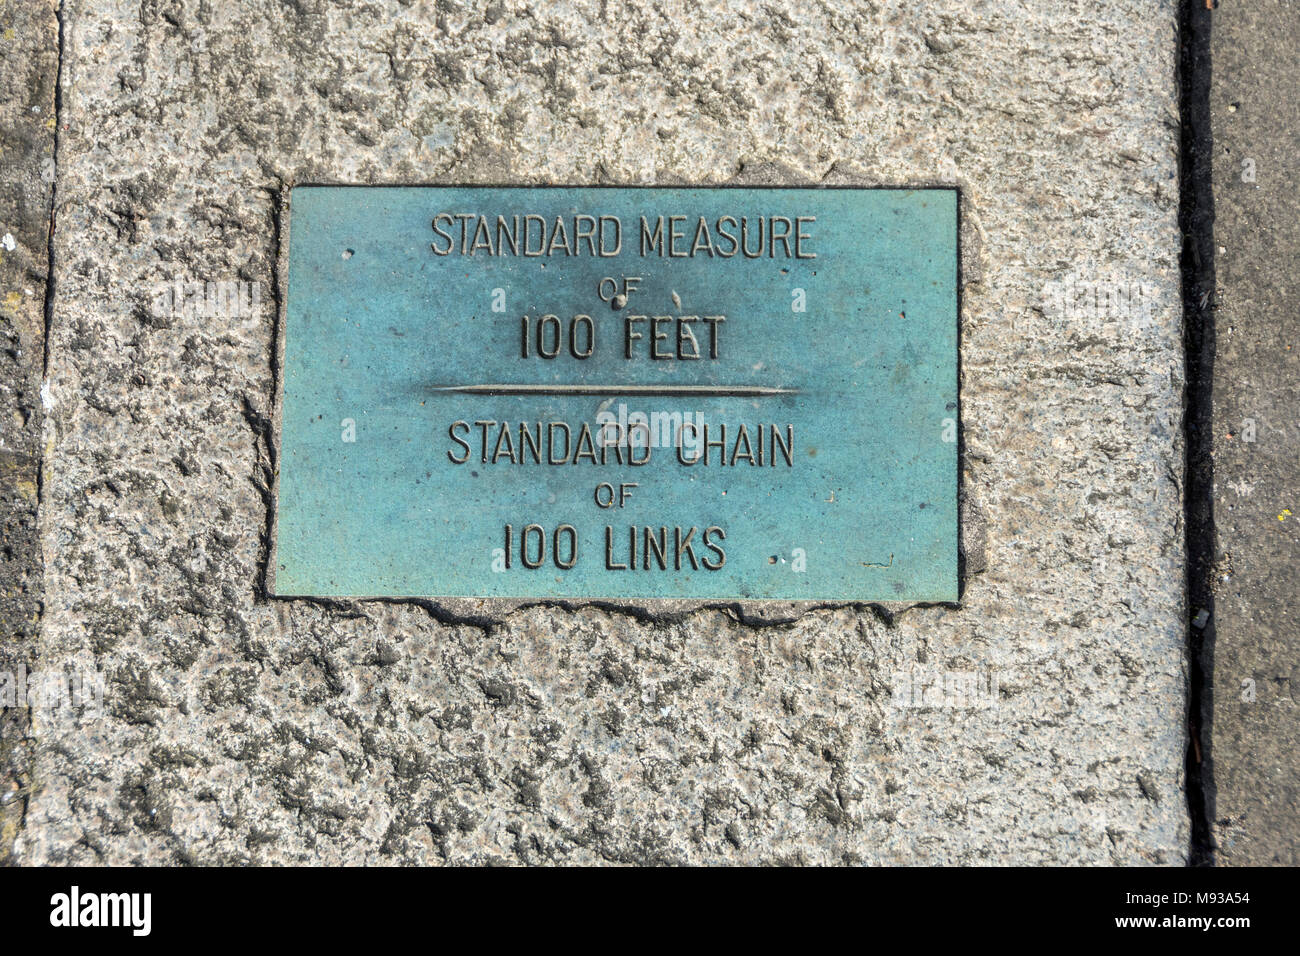 Marker at the start of the Standard Measures gauge, 100 feet and one Standard Chain of 100 links.  St. George's Quarter, Liverpool, England, UK - Stock Image